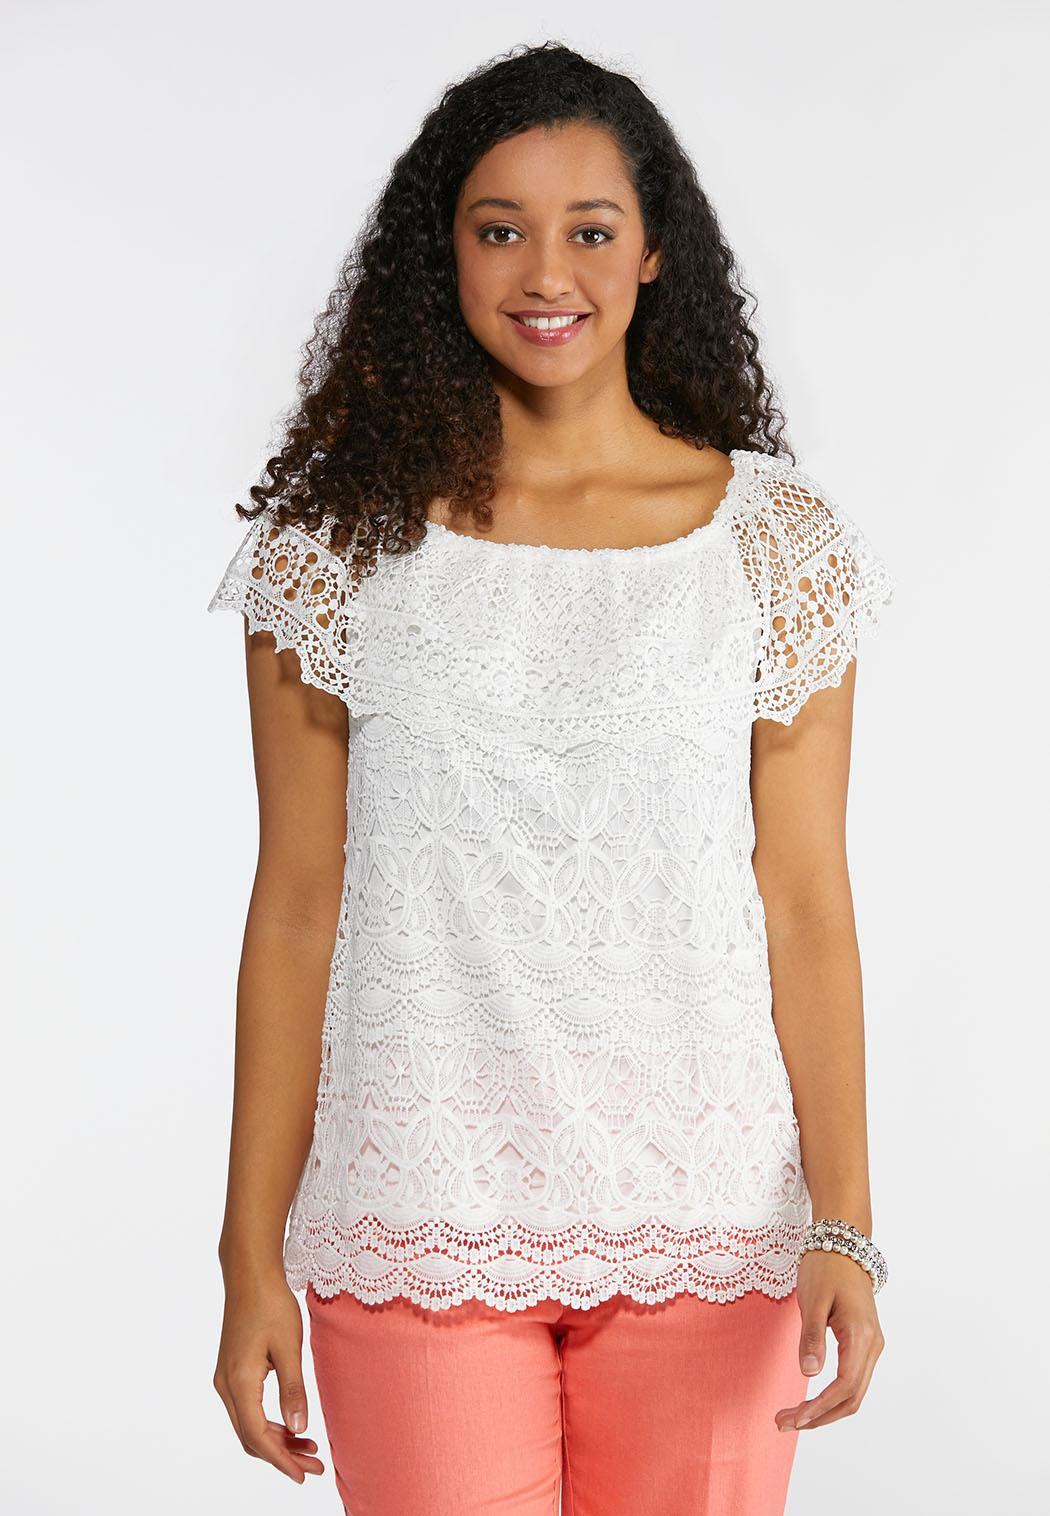 Plus Size Crochet Convertible Top Tops Cato Fashions